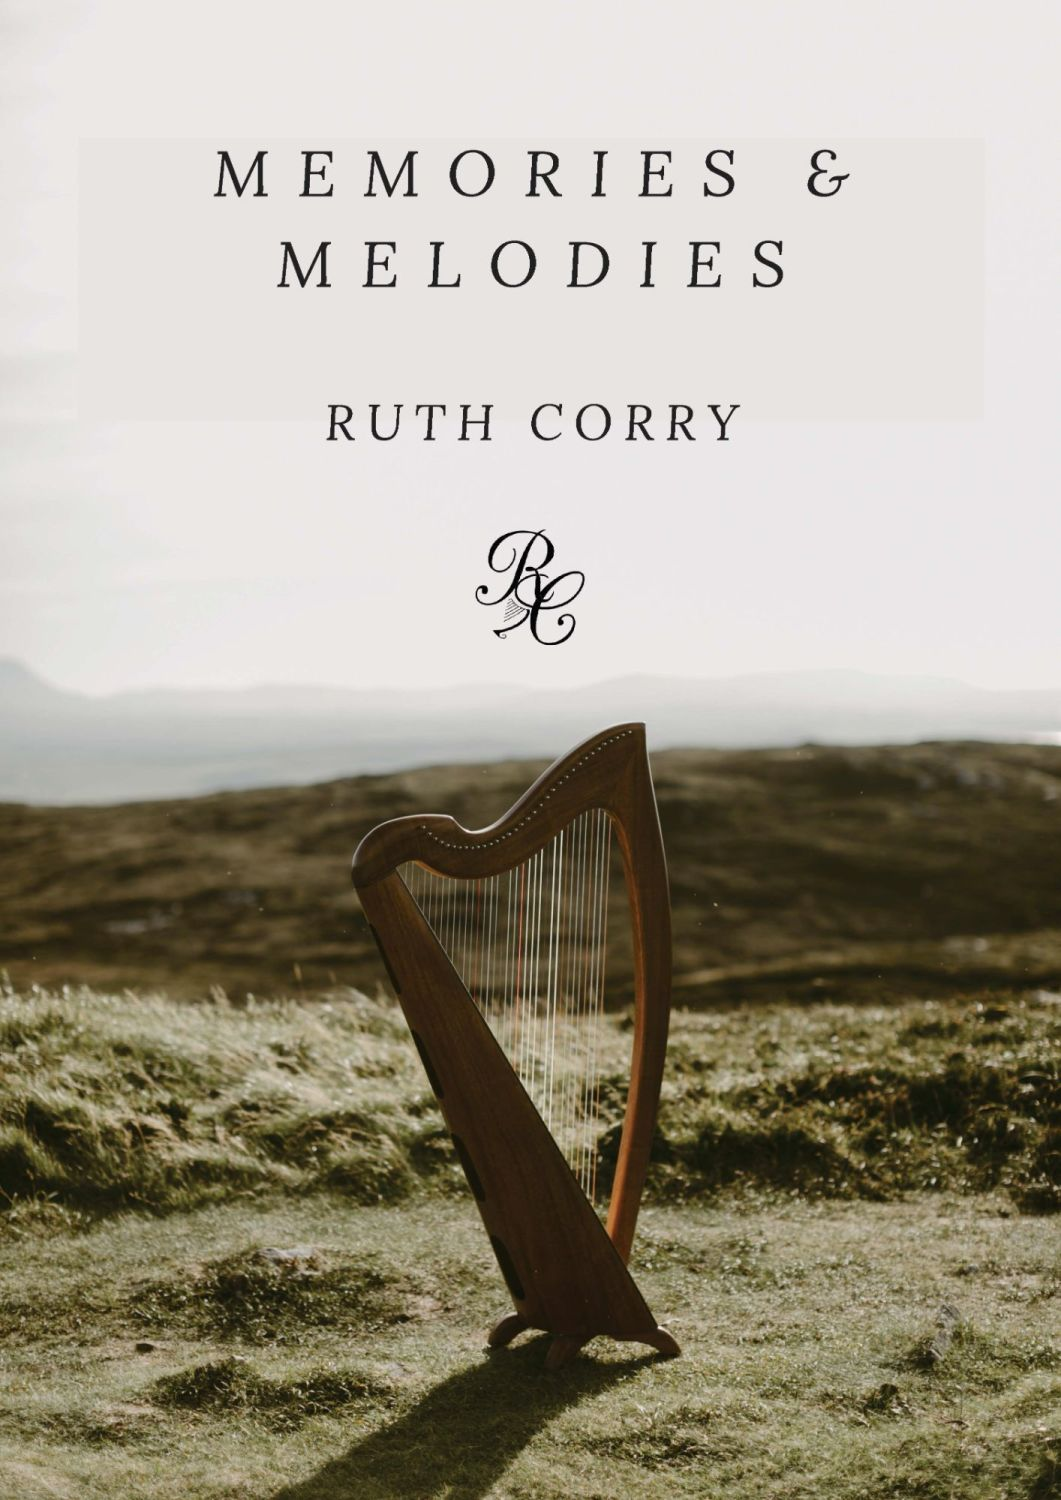 Memories & Melodies - Ruth Corry